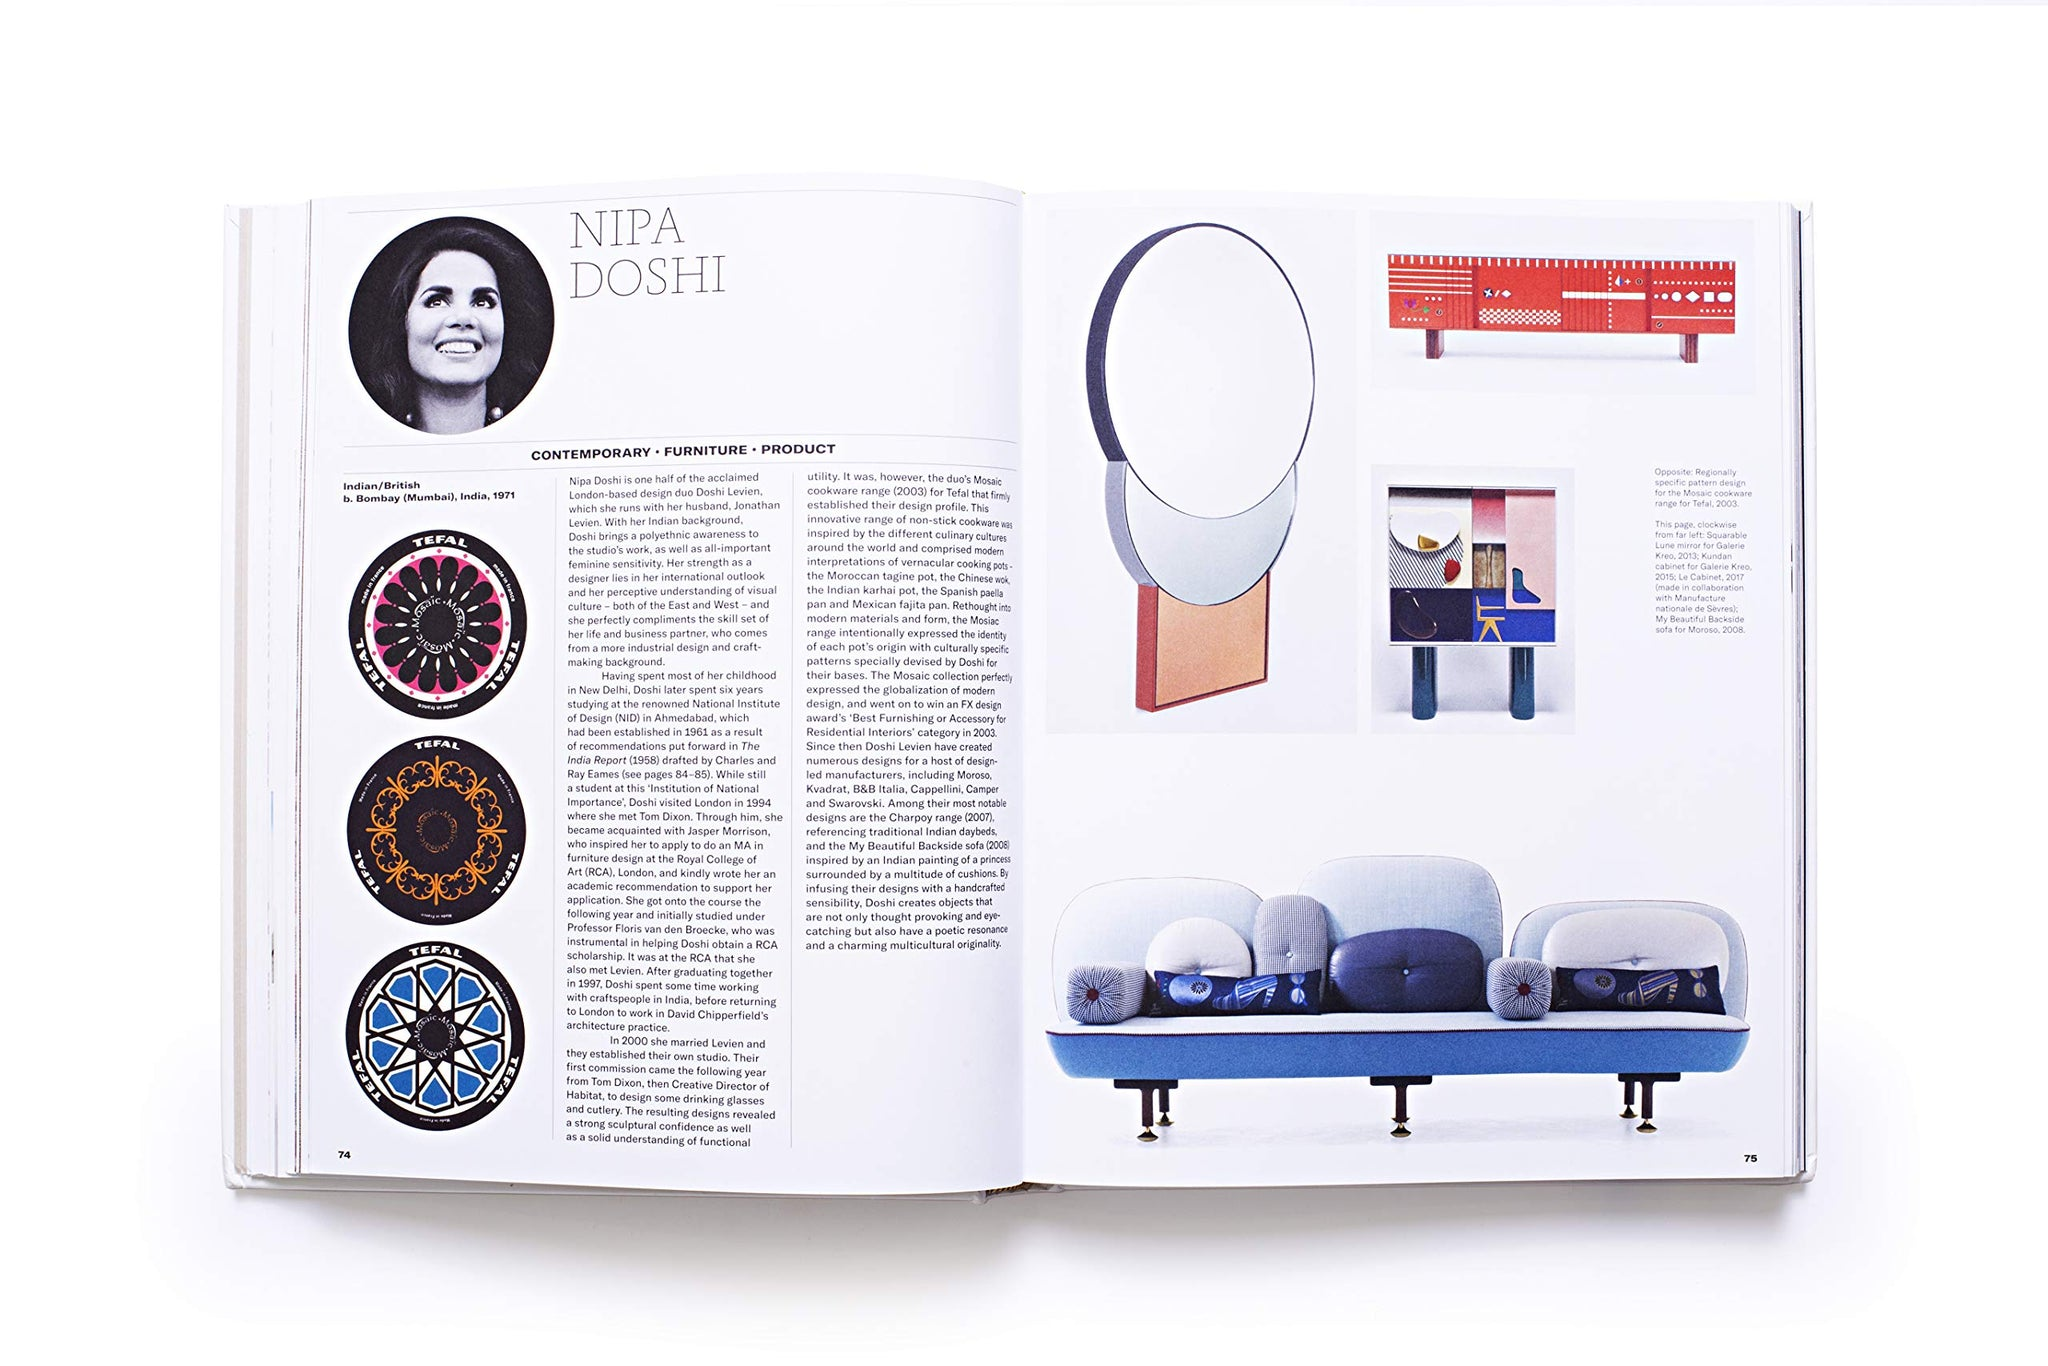 Women in Design: From Aino Aalto to Eva Zeisel